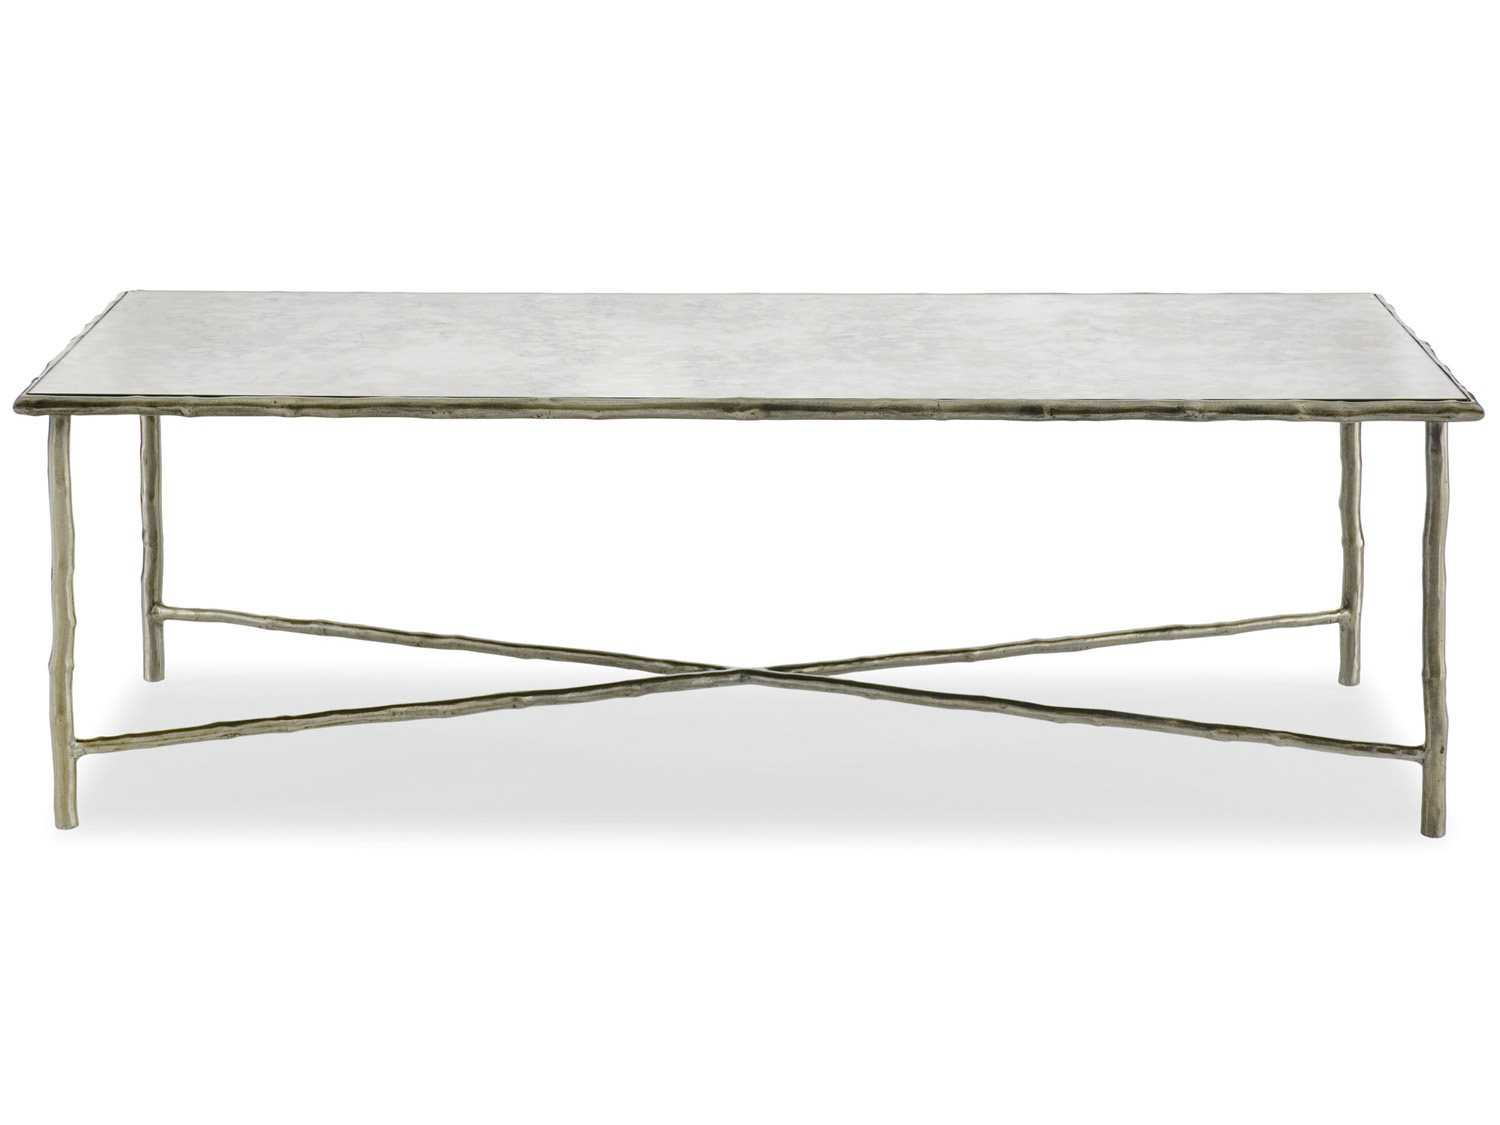 Bernhardt carlisle 51 x 27 rectangular coffee table bh413023 Bernhardt coffee tables